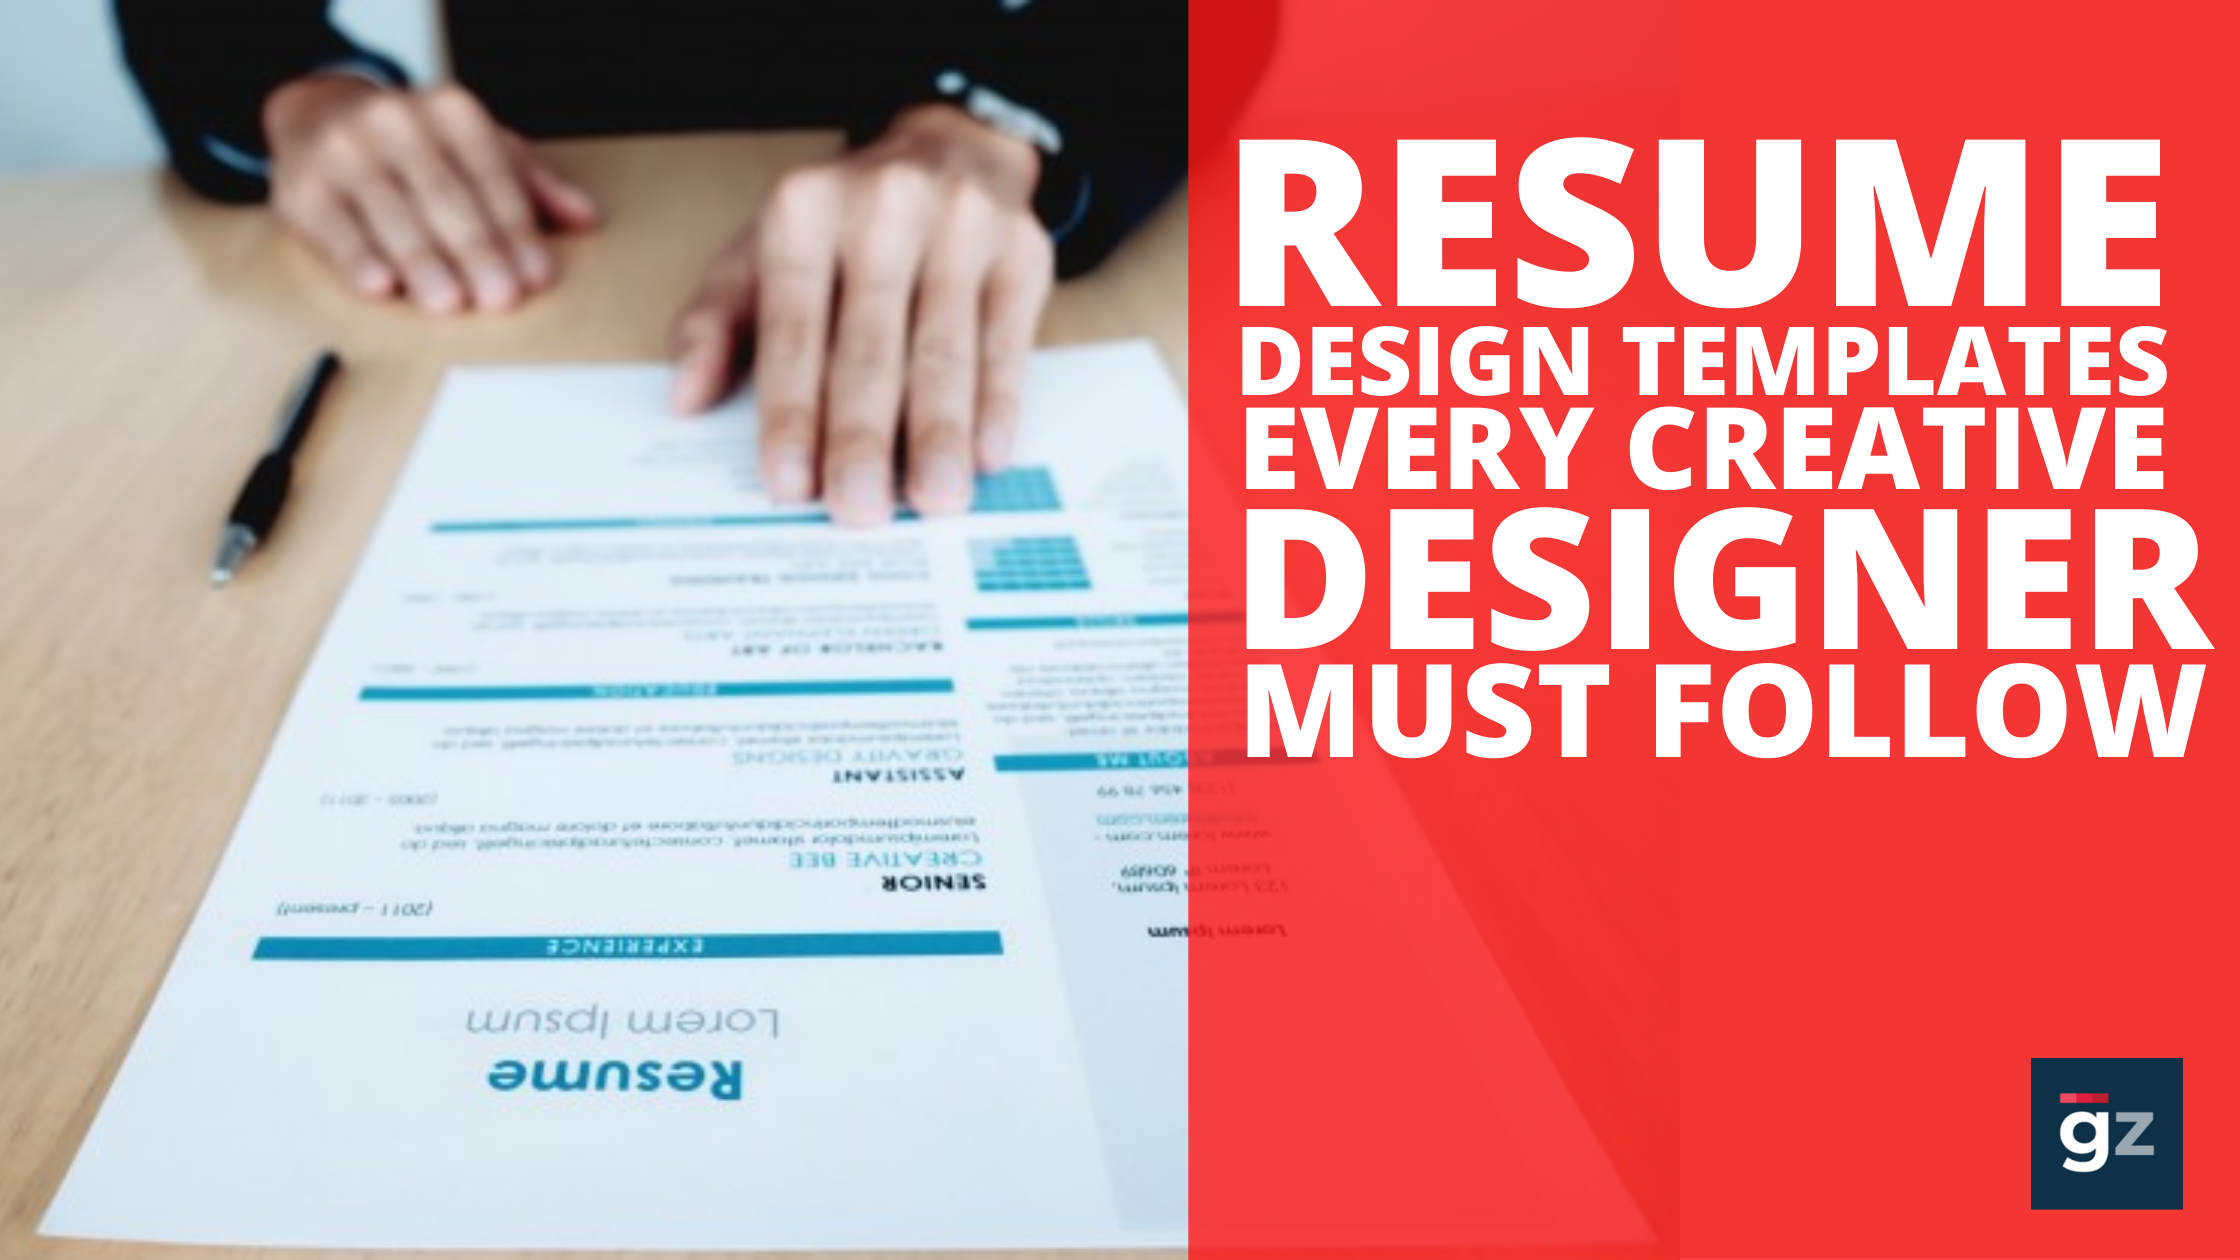 25 Resume Design Templates Every Creative Designer Must Follow